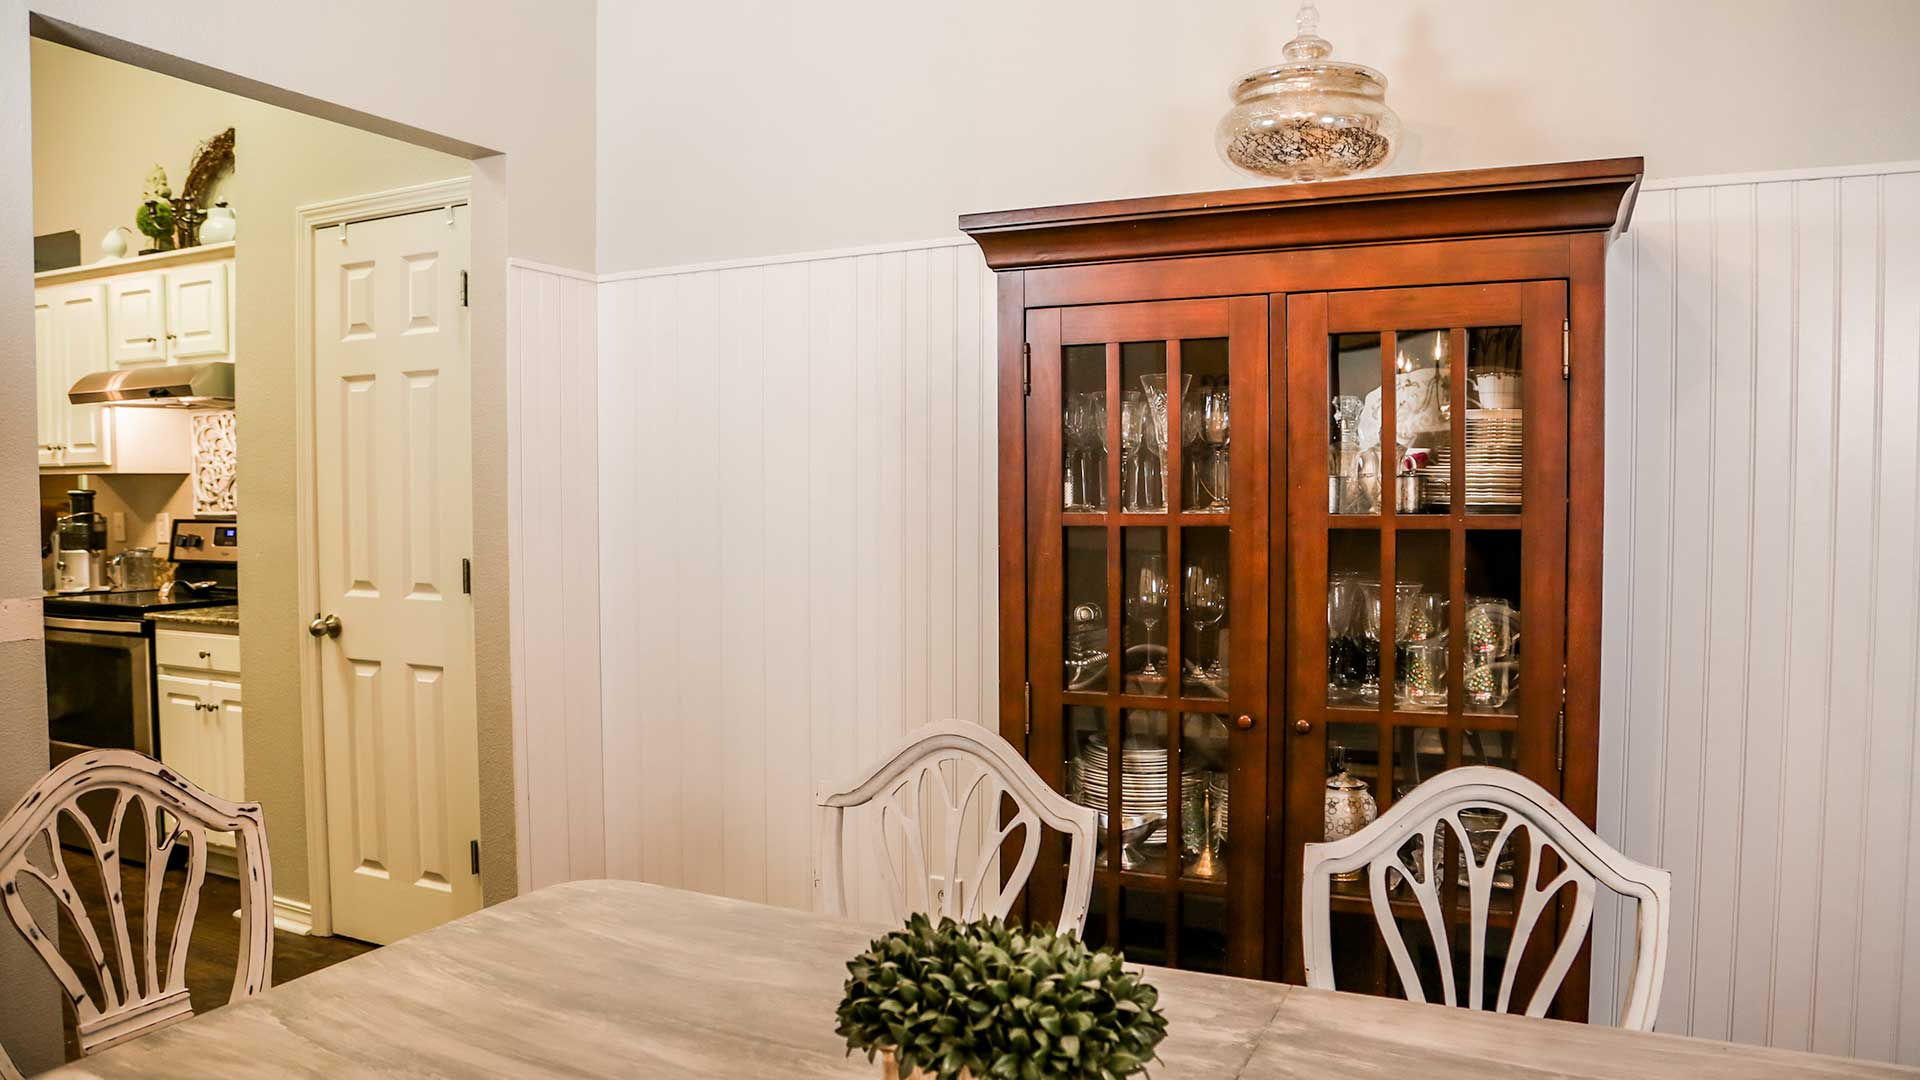 Dining Room Wainscoting Add Charm With, Wainscoting Dining Room